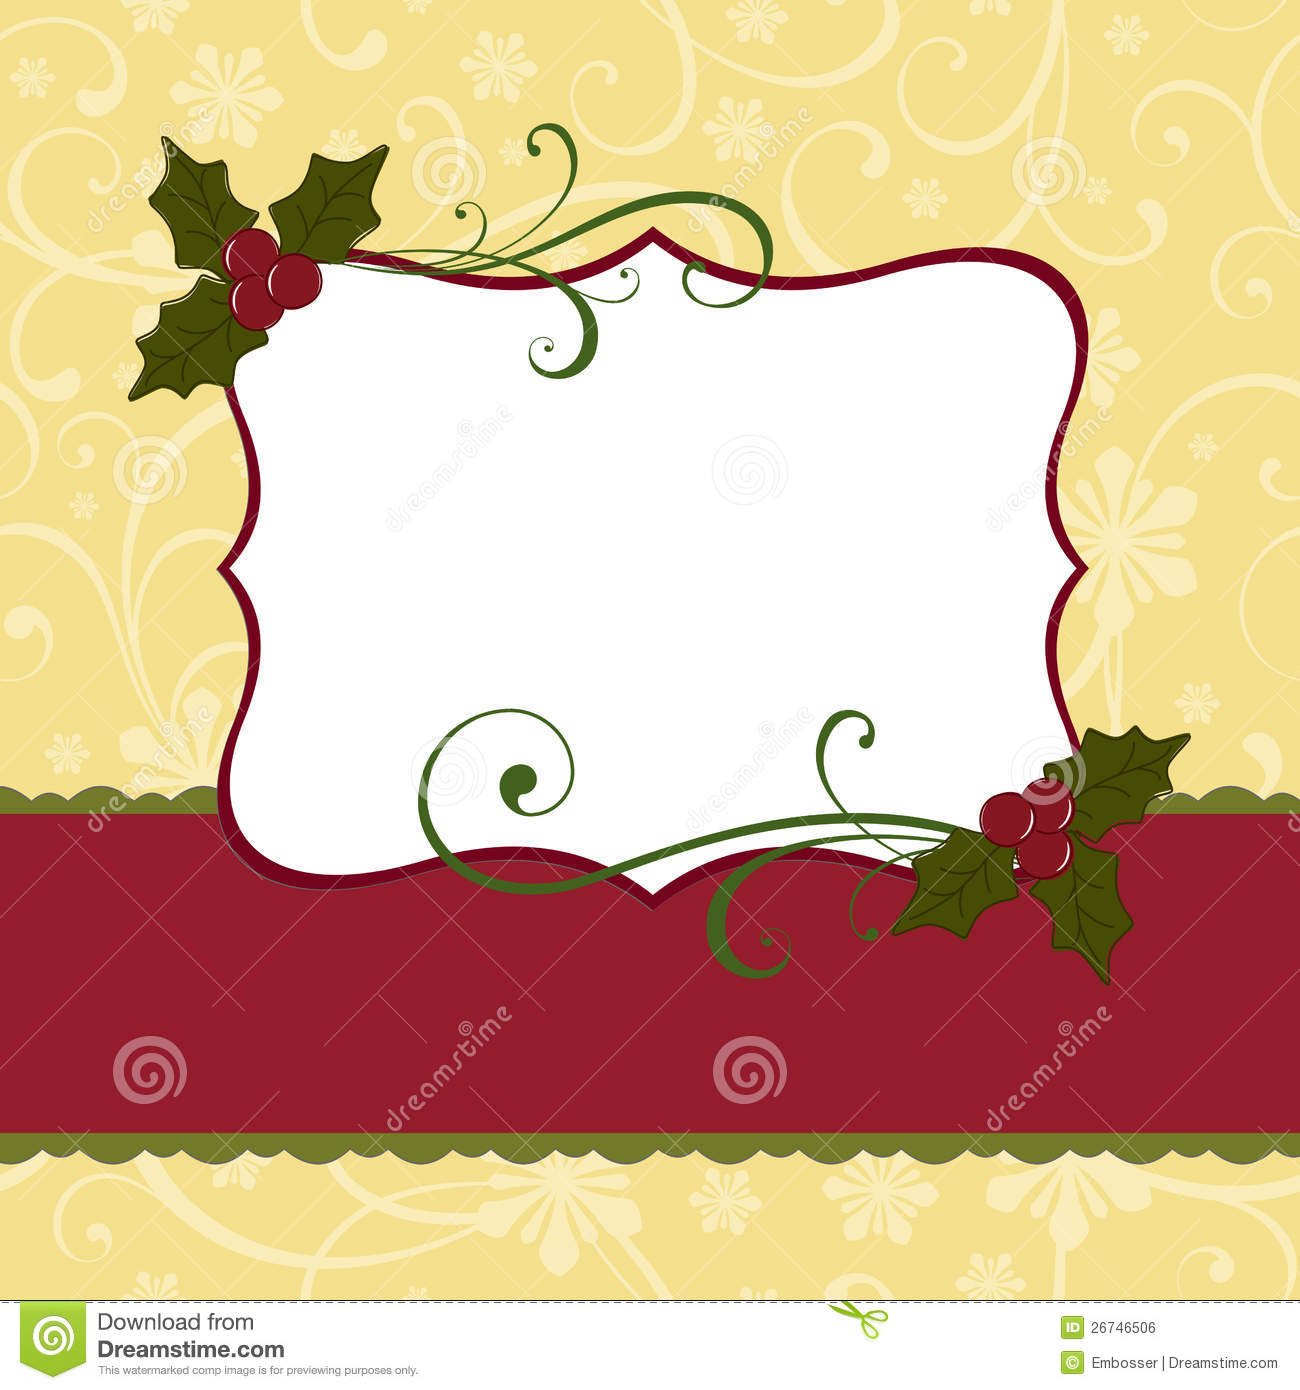 Cute Christmas Postcard Template Royalty Free Stock Image - Image ...